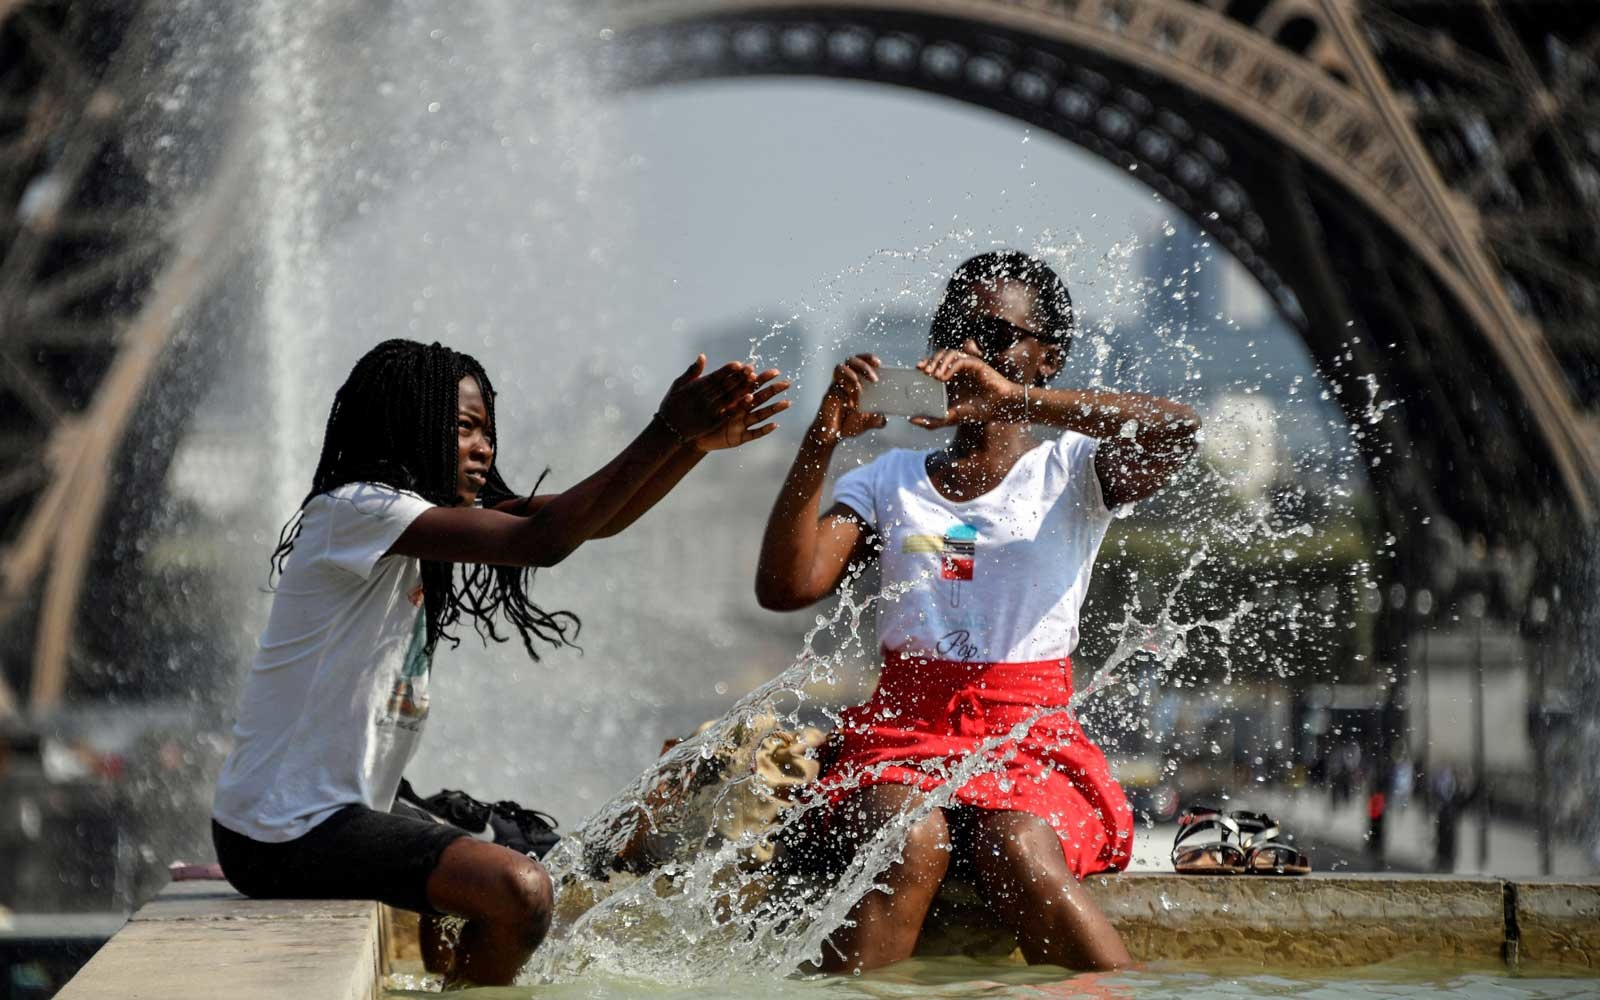 People cool themselves at the Fontaine du Trocadero in front of The Eiffel Tower in Paris on July 25, 2018